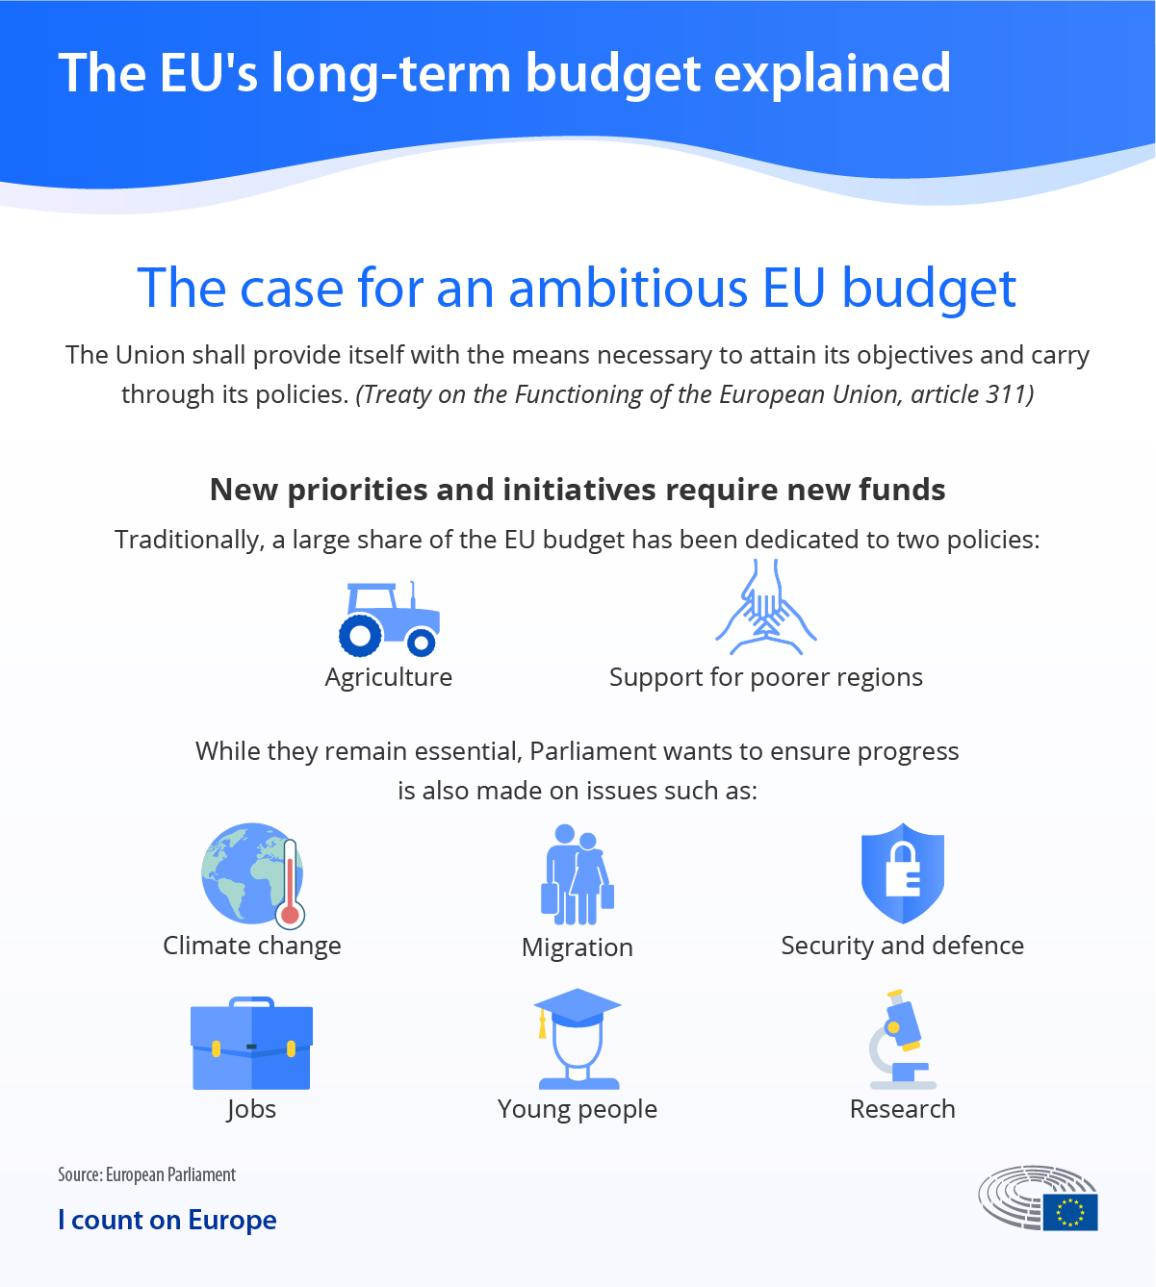 Infographic on the European Parliament's position in the EU long-term budget negotiations showing what priorities require new funds